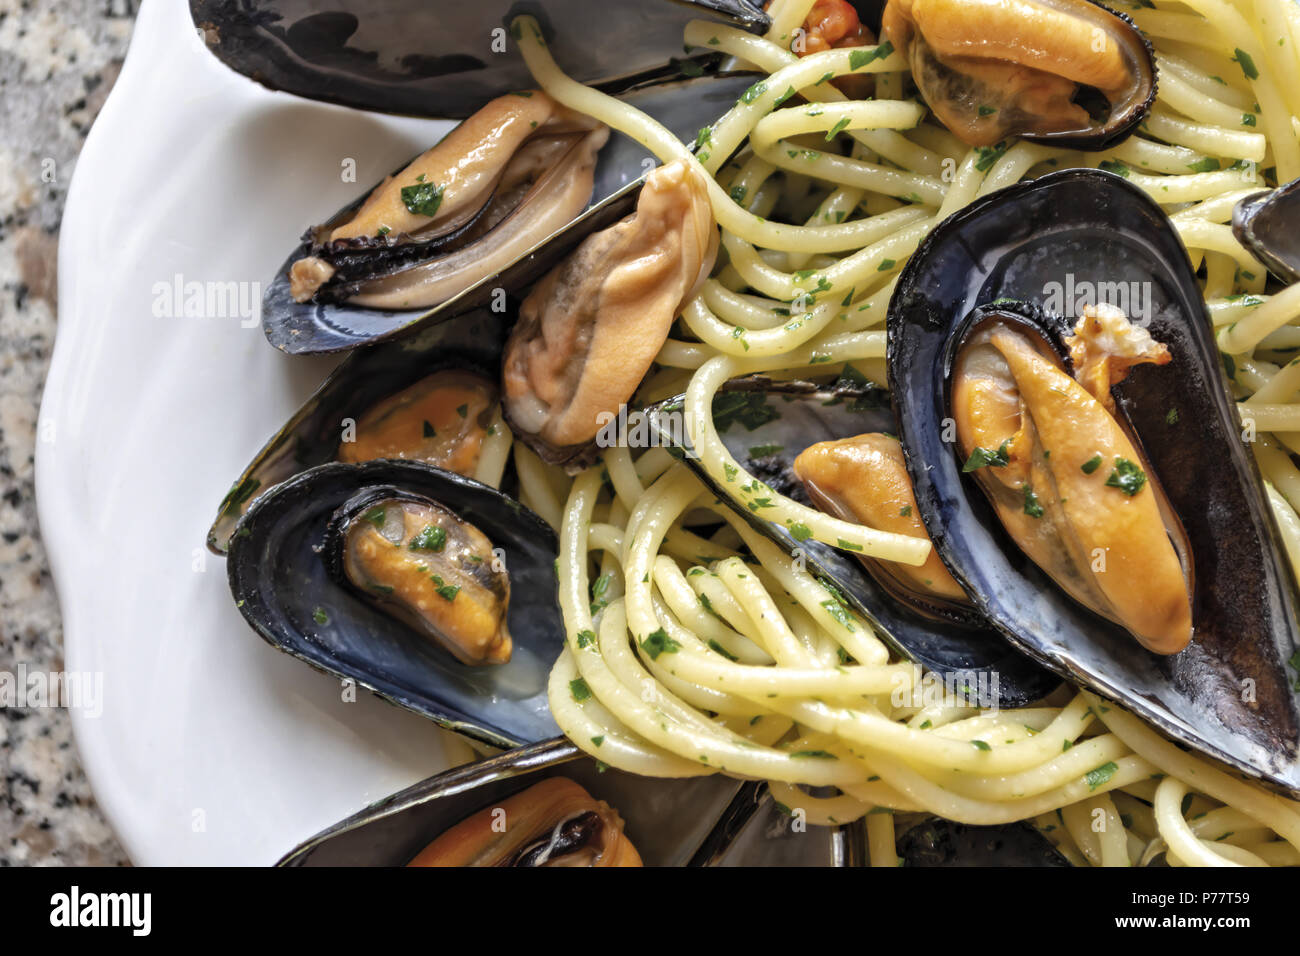 spaghetti pasta with mussels garlic and parsley 6 - Stock Image